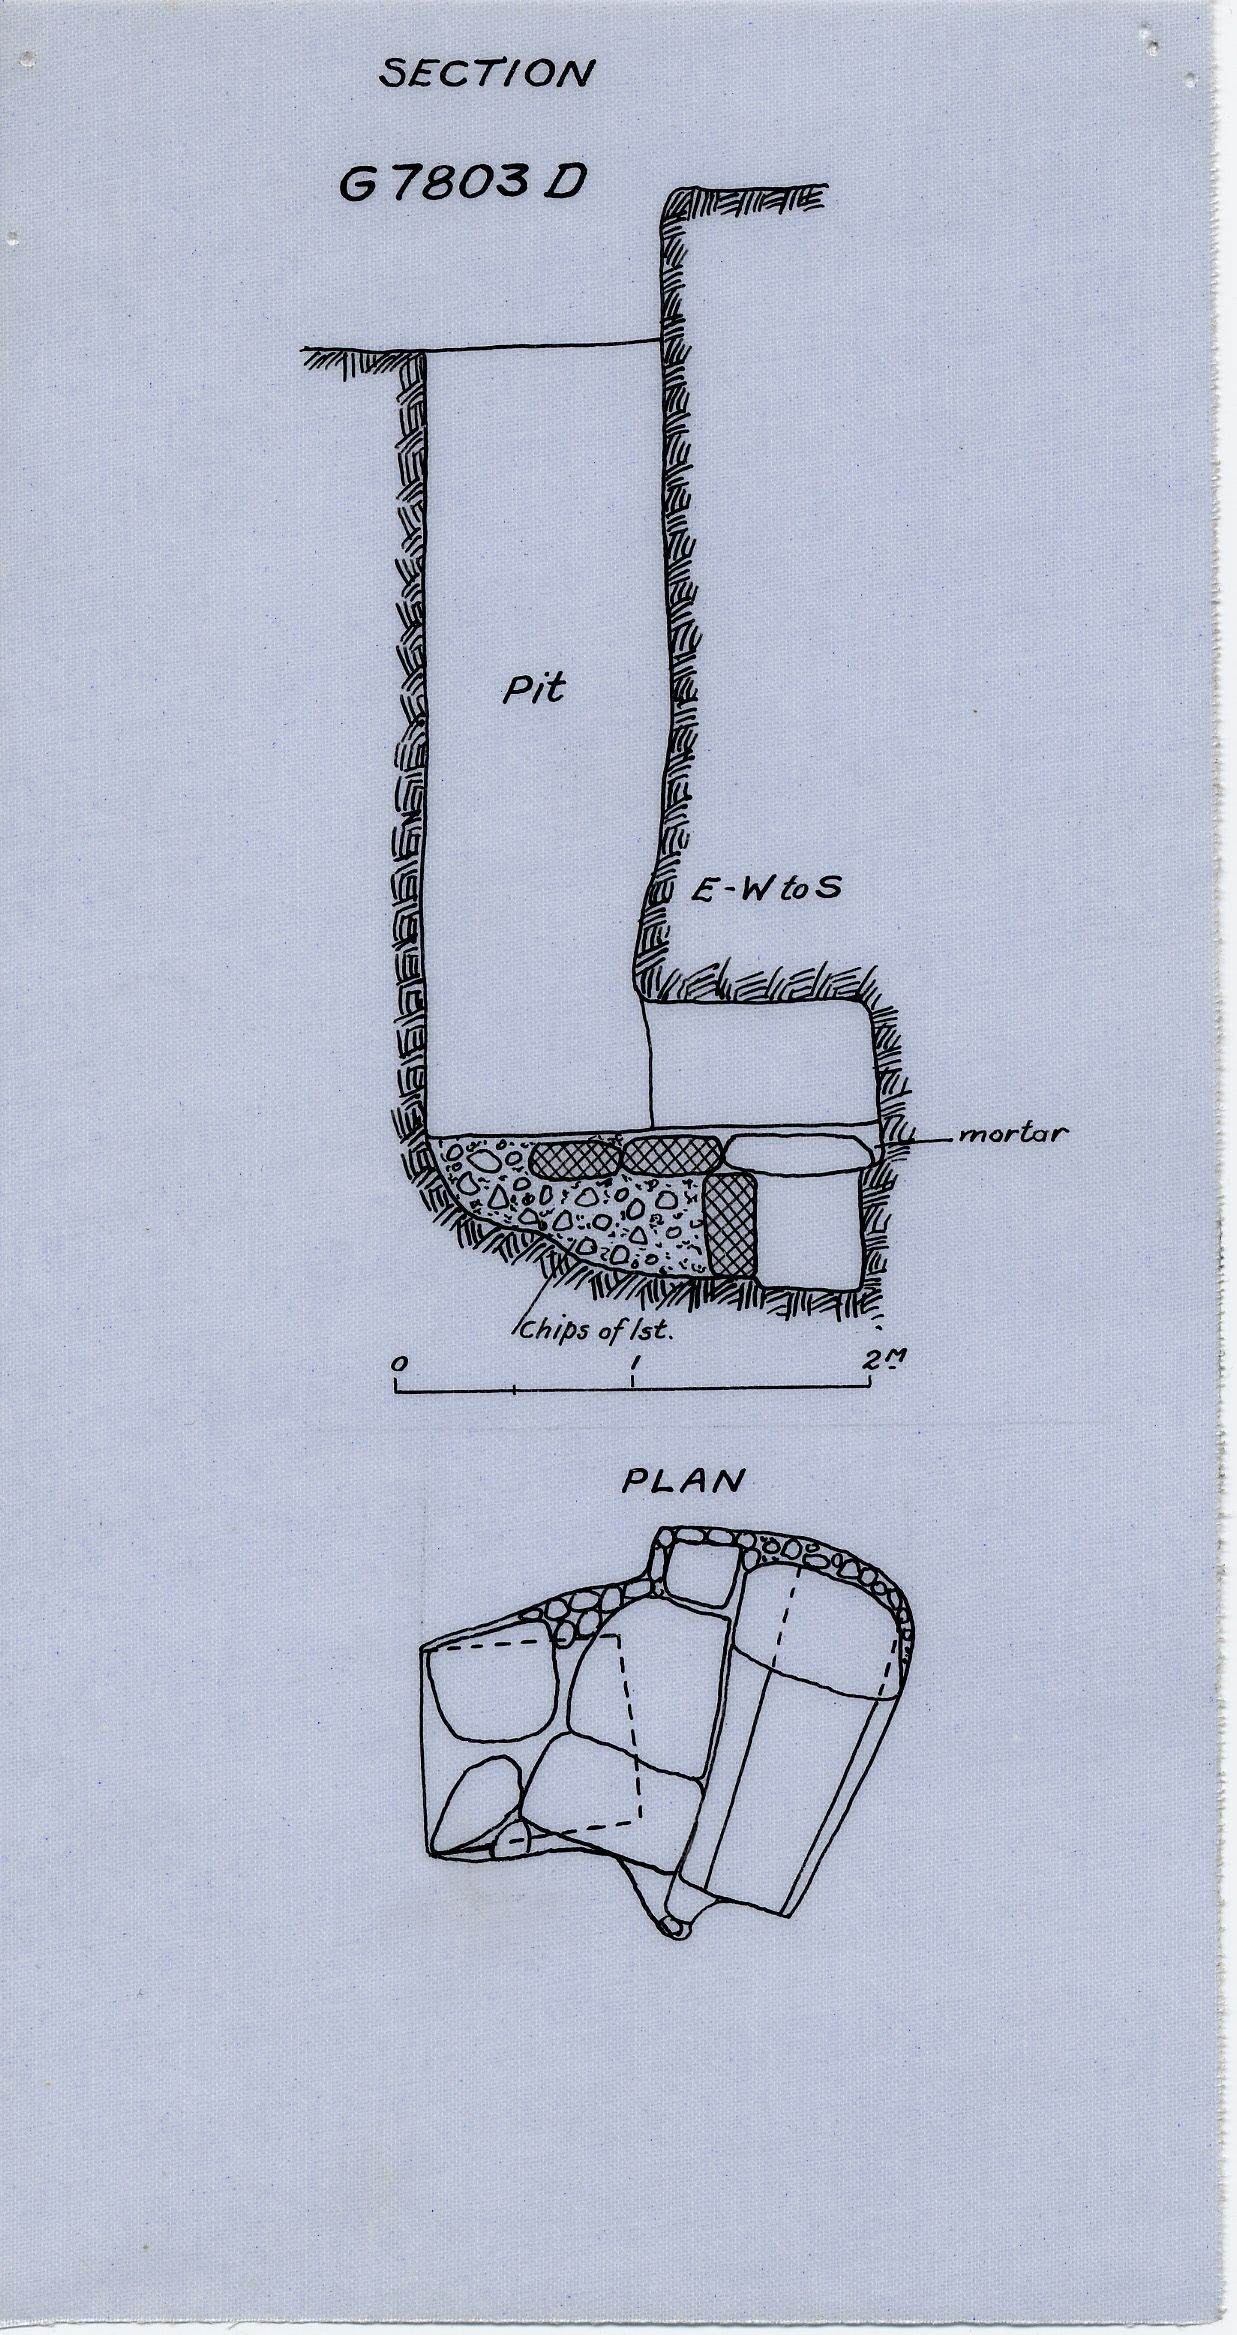 Maps and plans: G 7803, Shaft D